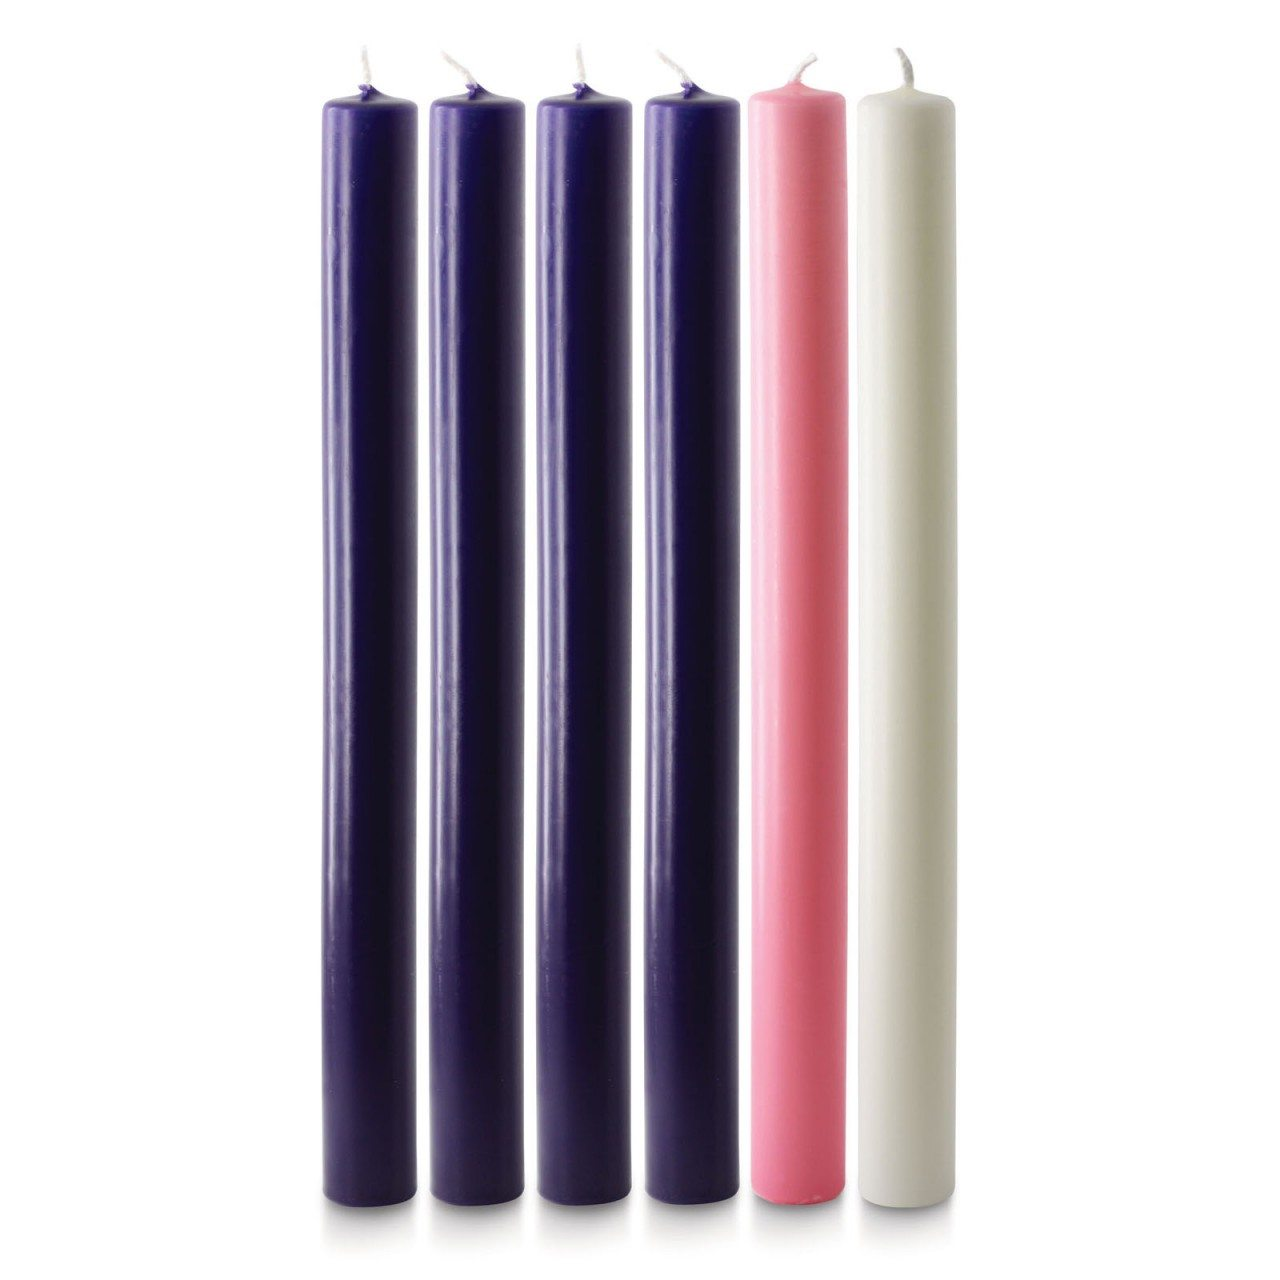 12 x 1 advent candles 4 purple 1 pink 1 white. Black Bedroom Furniture Sets. Home Design Ideas